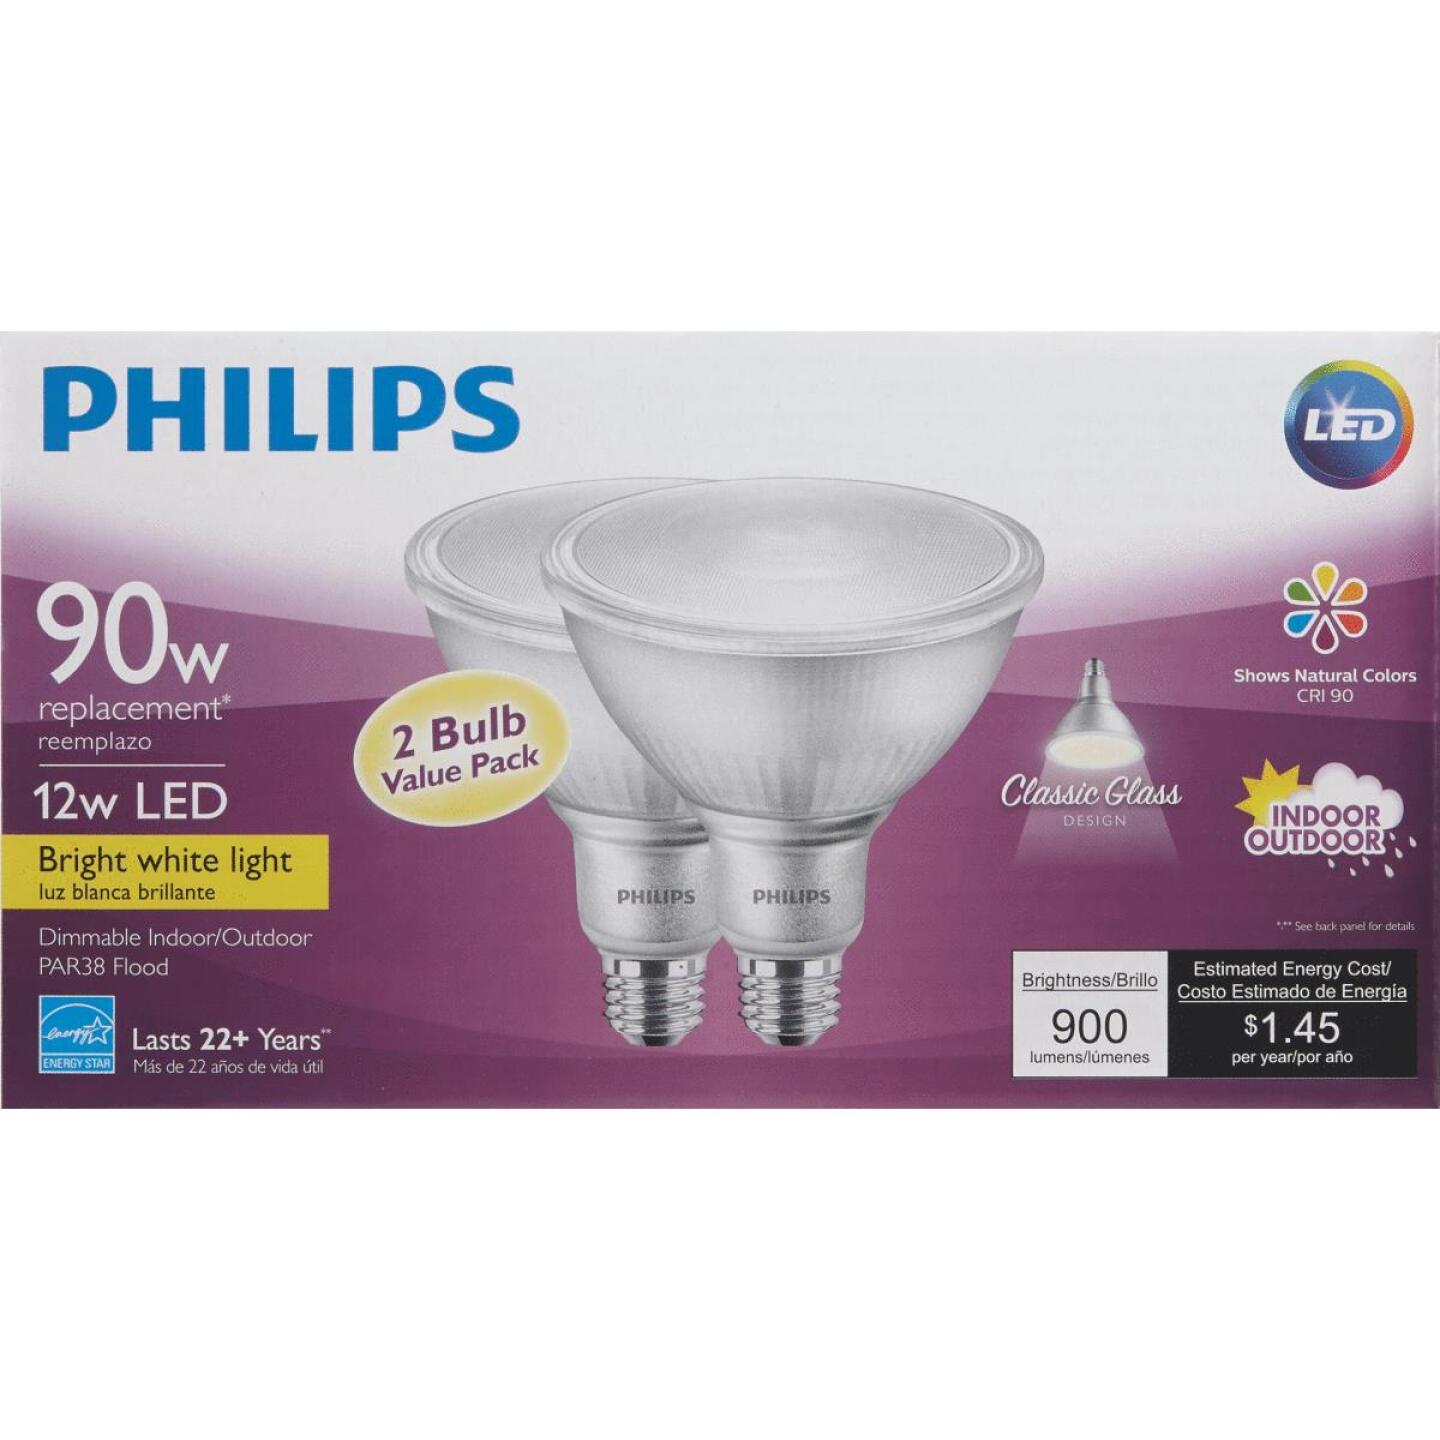 Philips 90W Equivalent Bright White PAR38 Medium Indoor/Outdoor LED Floodlight Light Bulb (2-Pack) Image 3